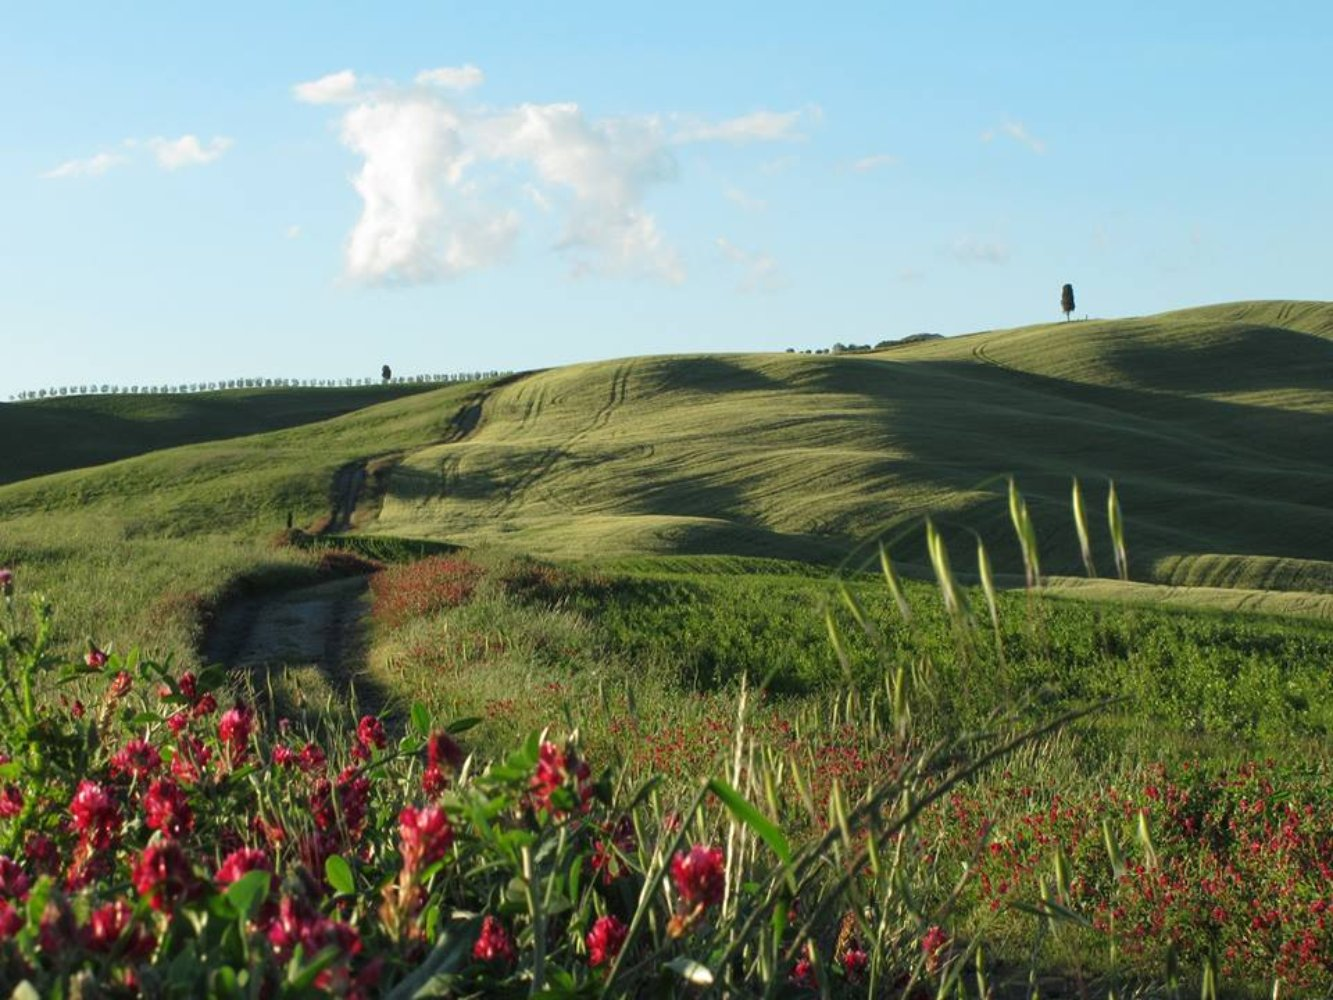 Along the Via Francigena in Val D'Orcia